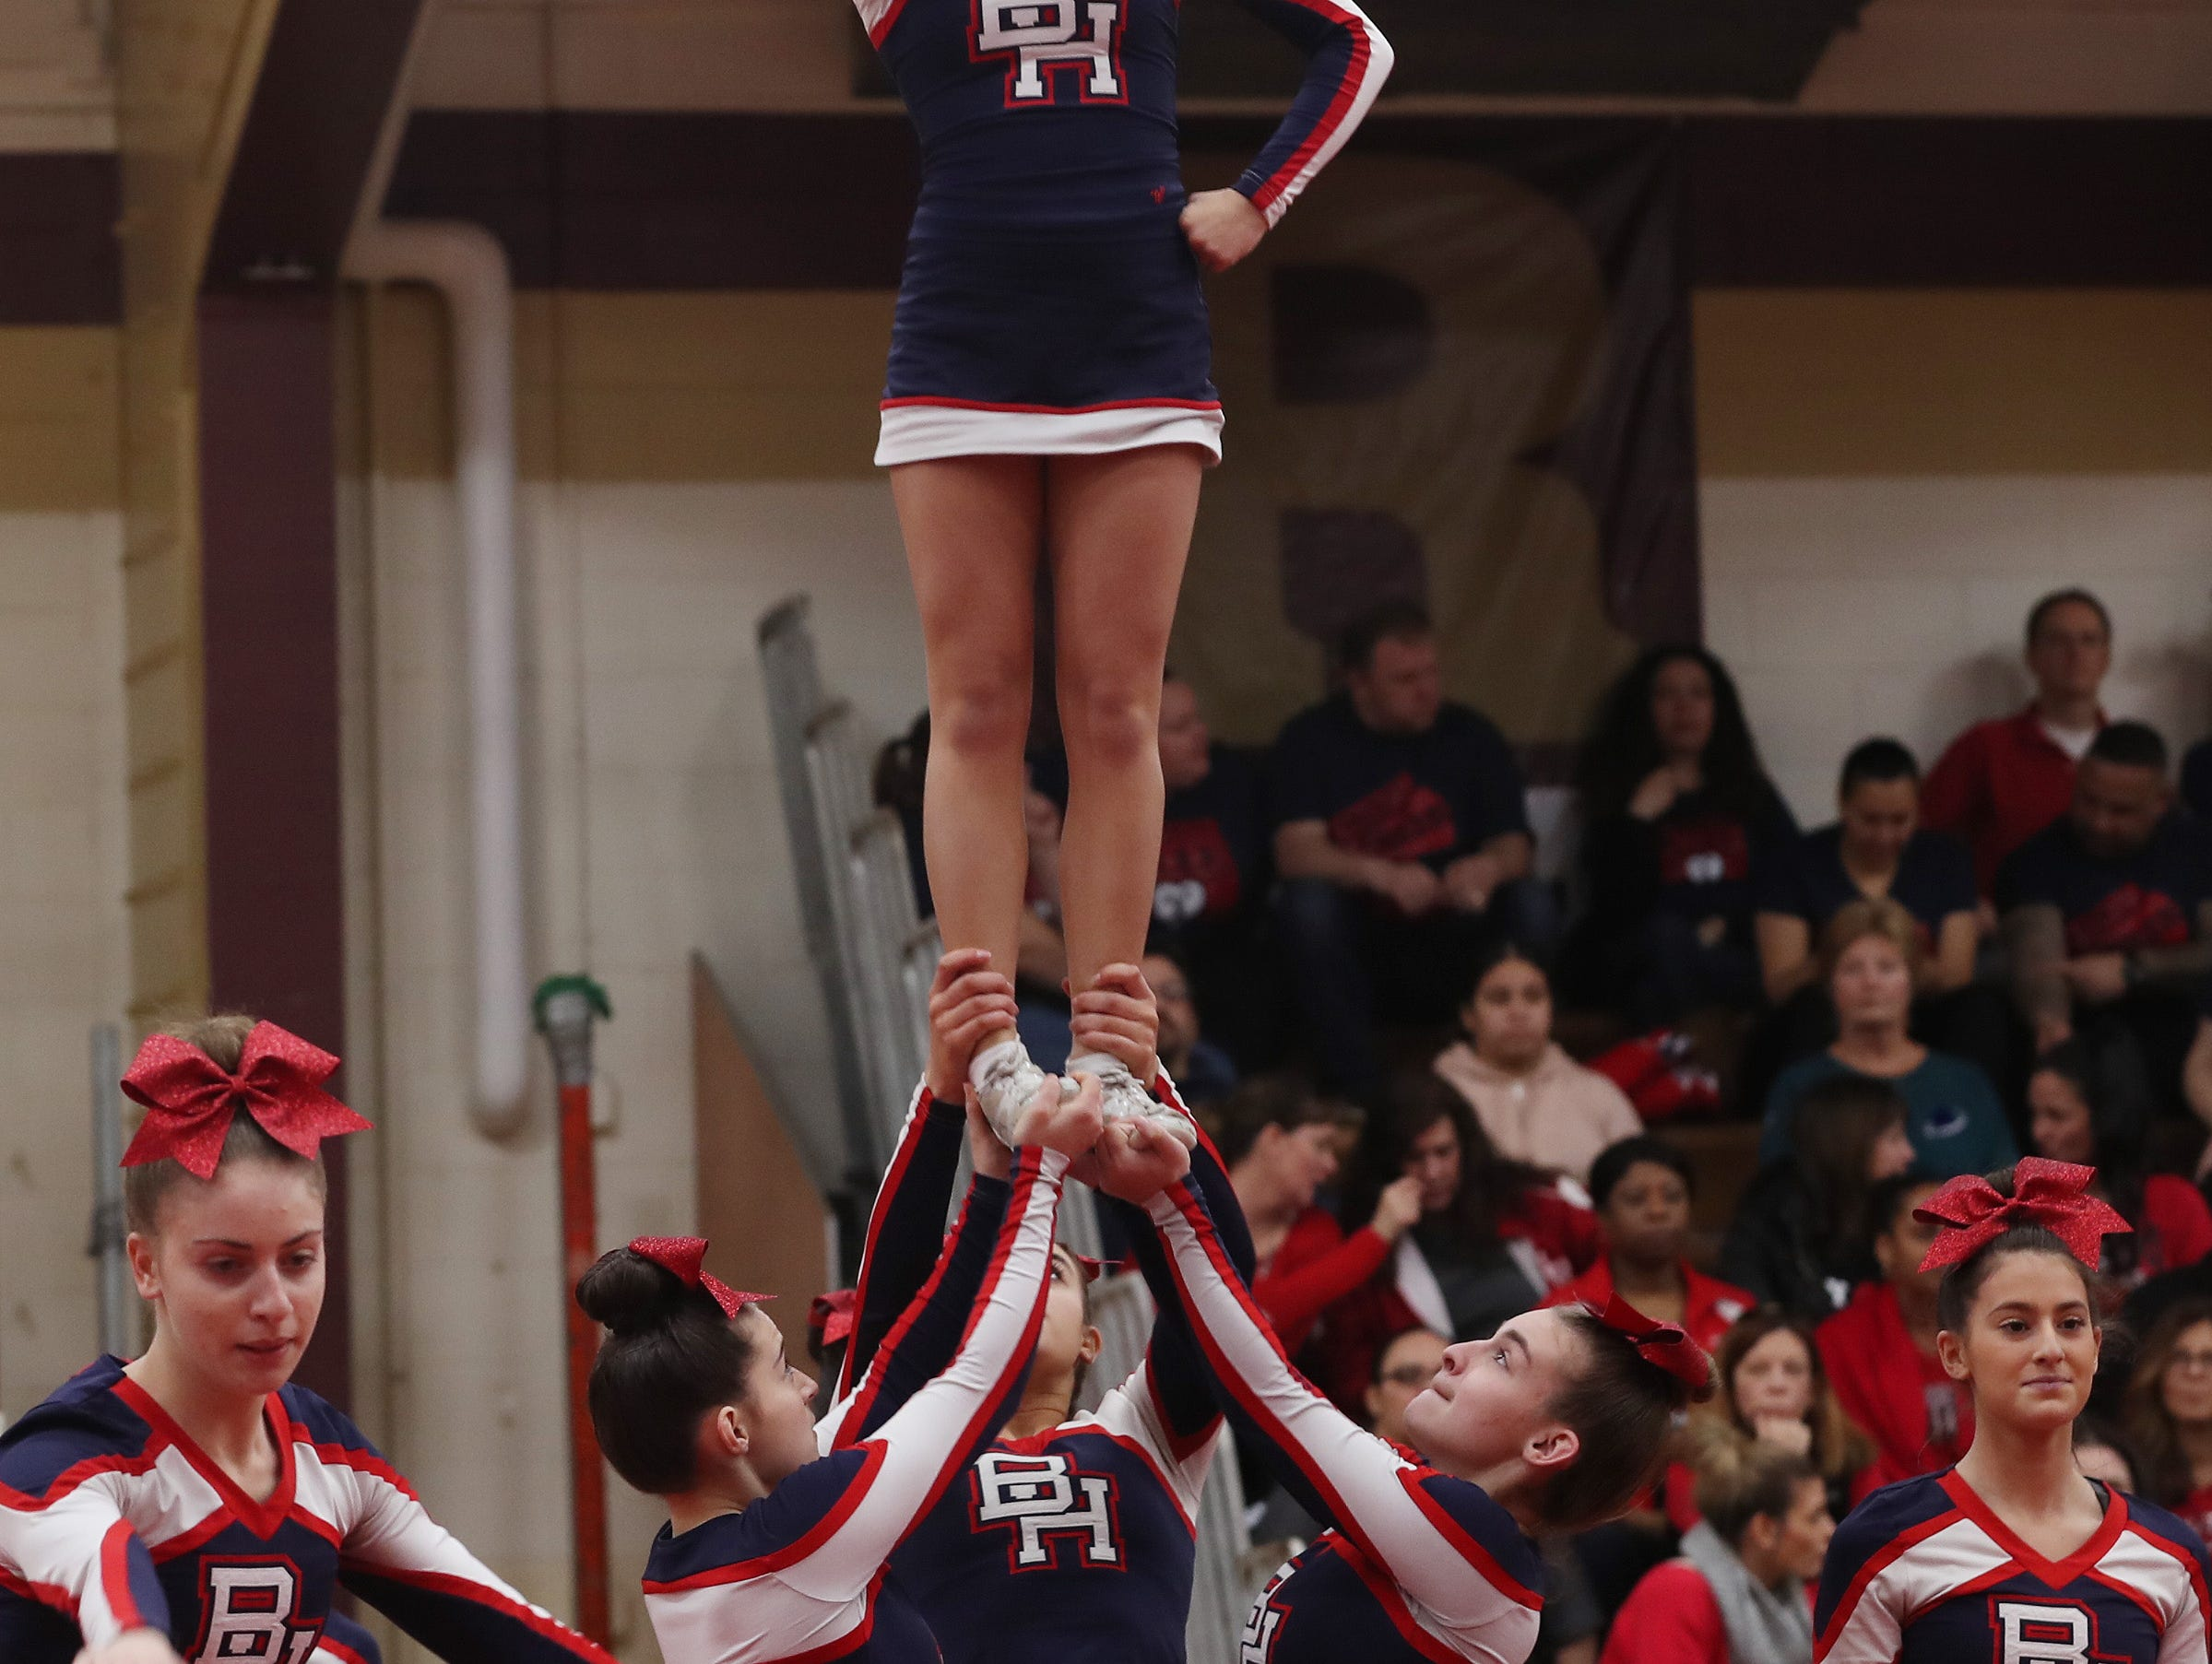 Byram Hills High School competes during the Section 1 cheerleading championships at Arlington High School in Freedom Plains Feb. 16, 2019.